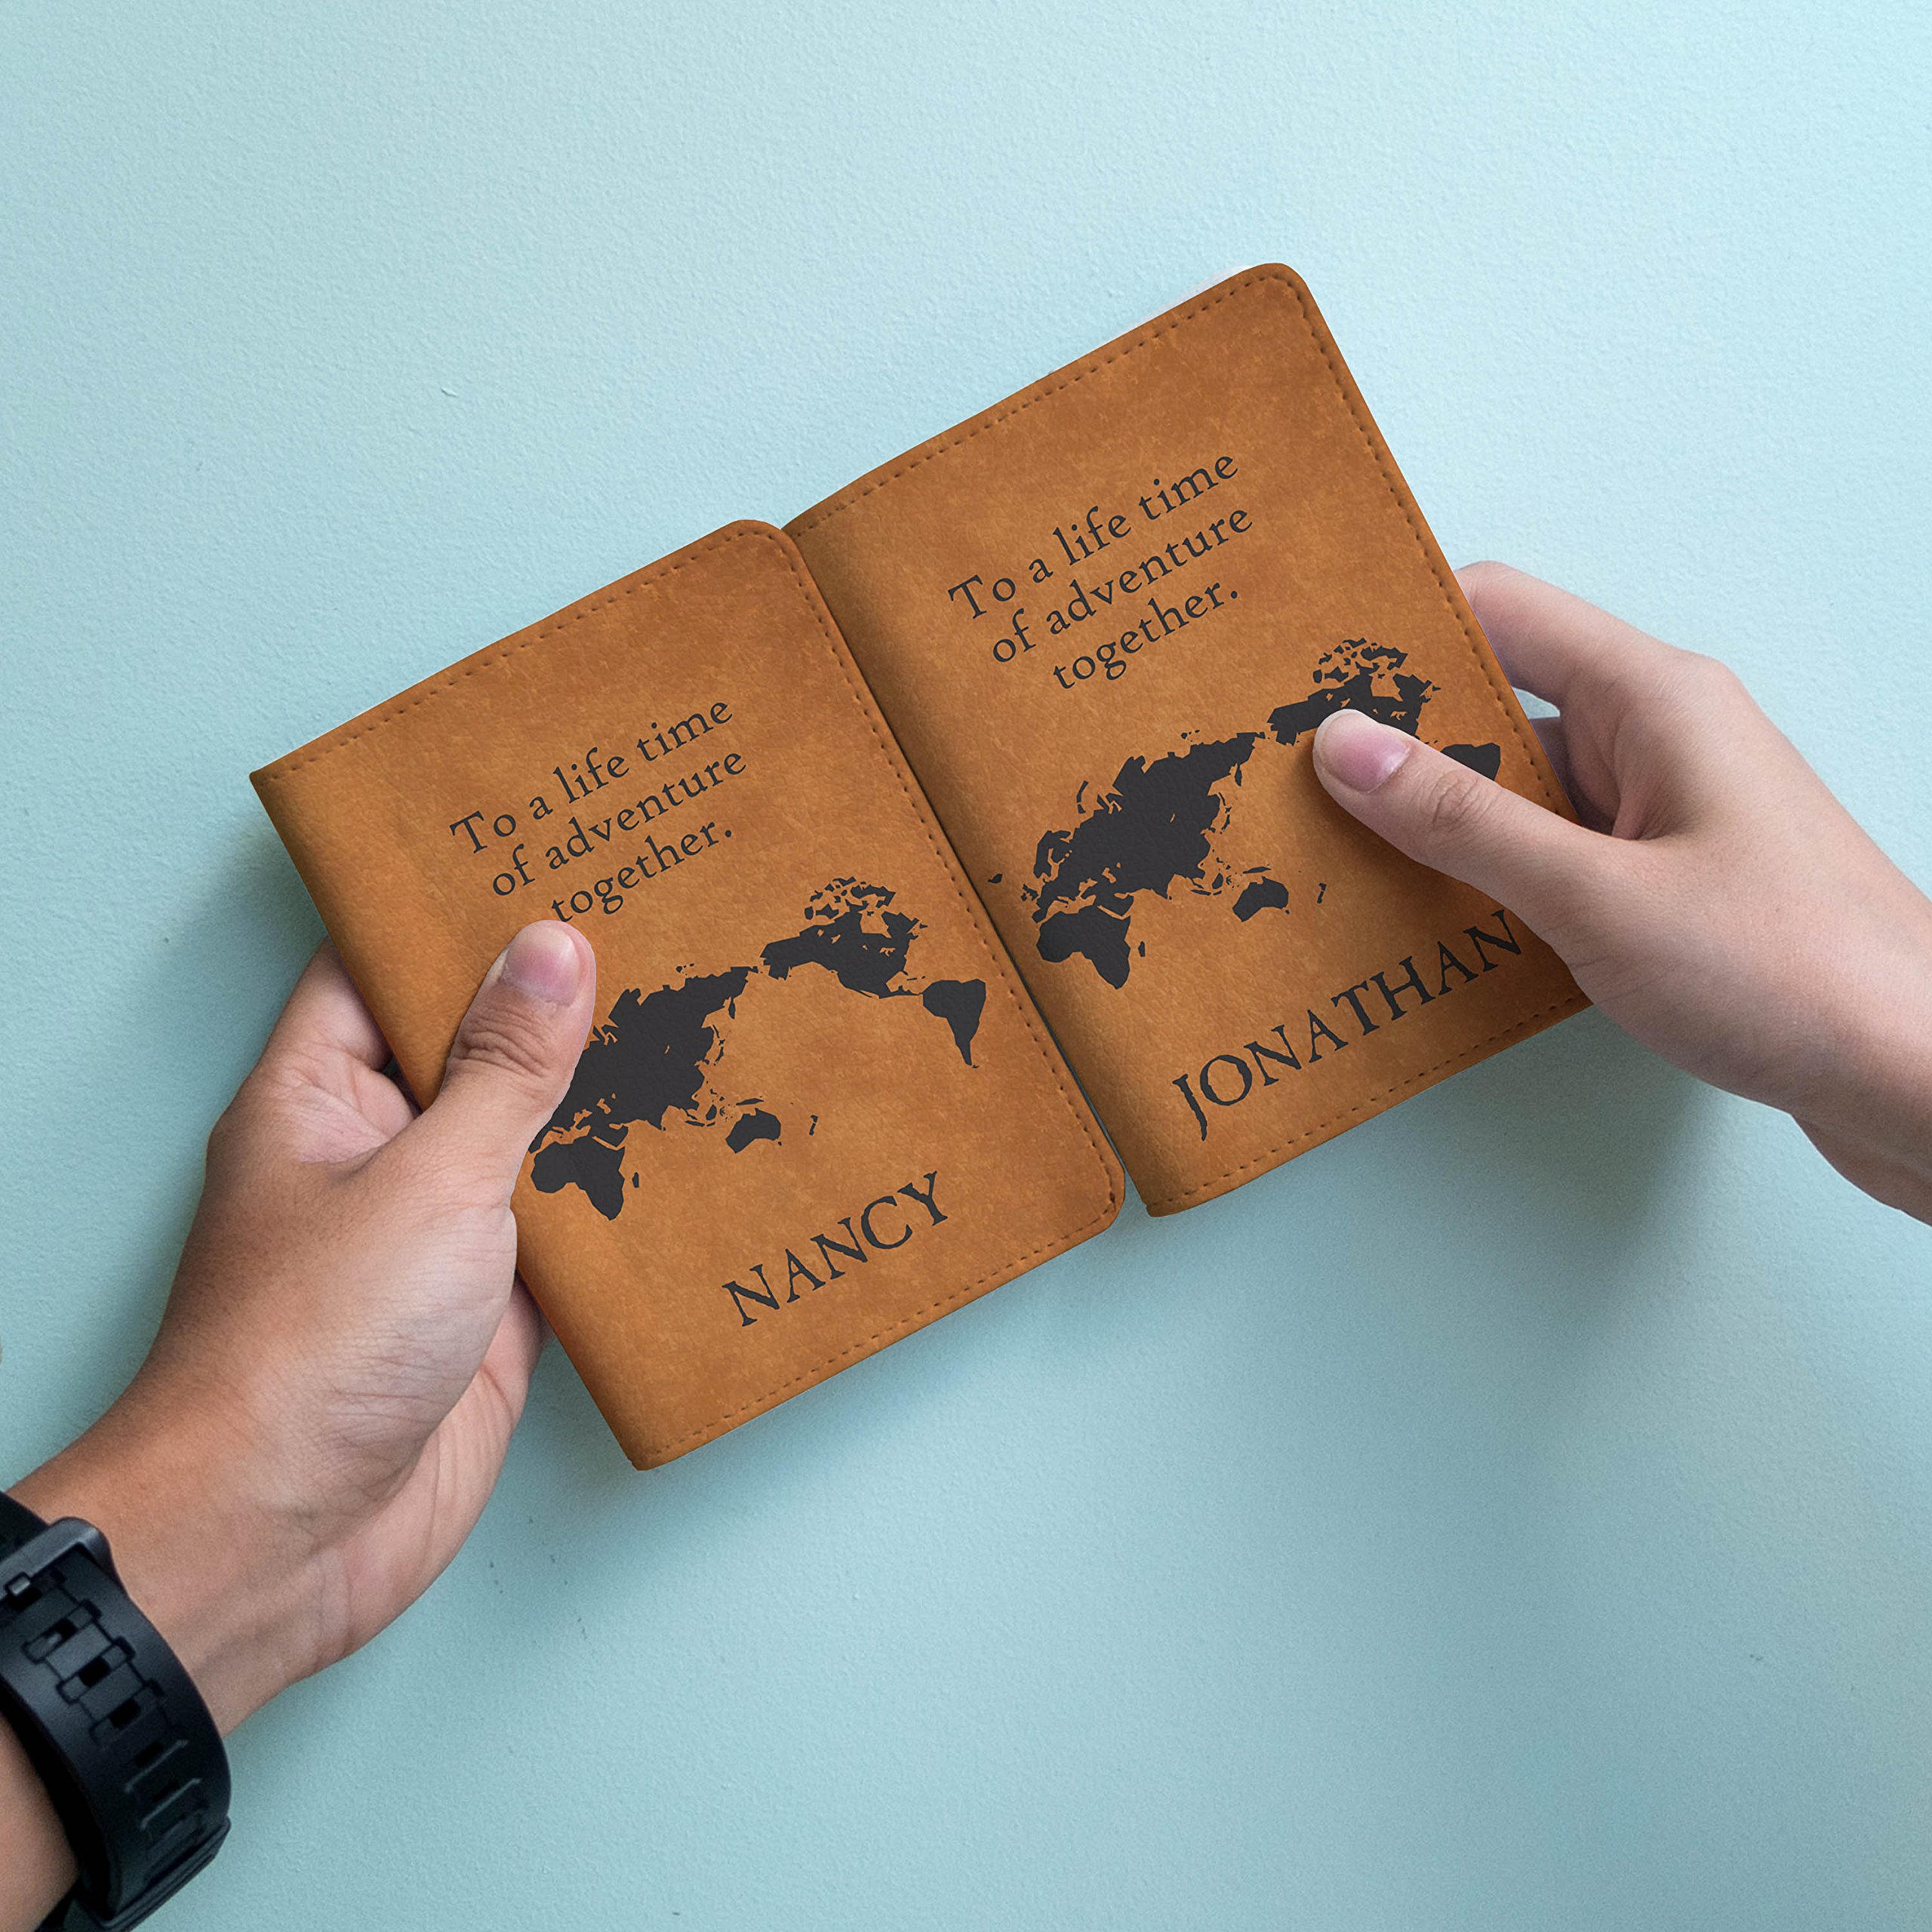 Couple passport holder Set of 2 - Personalized with your Names by Handmade Curious (Image #3)